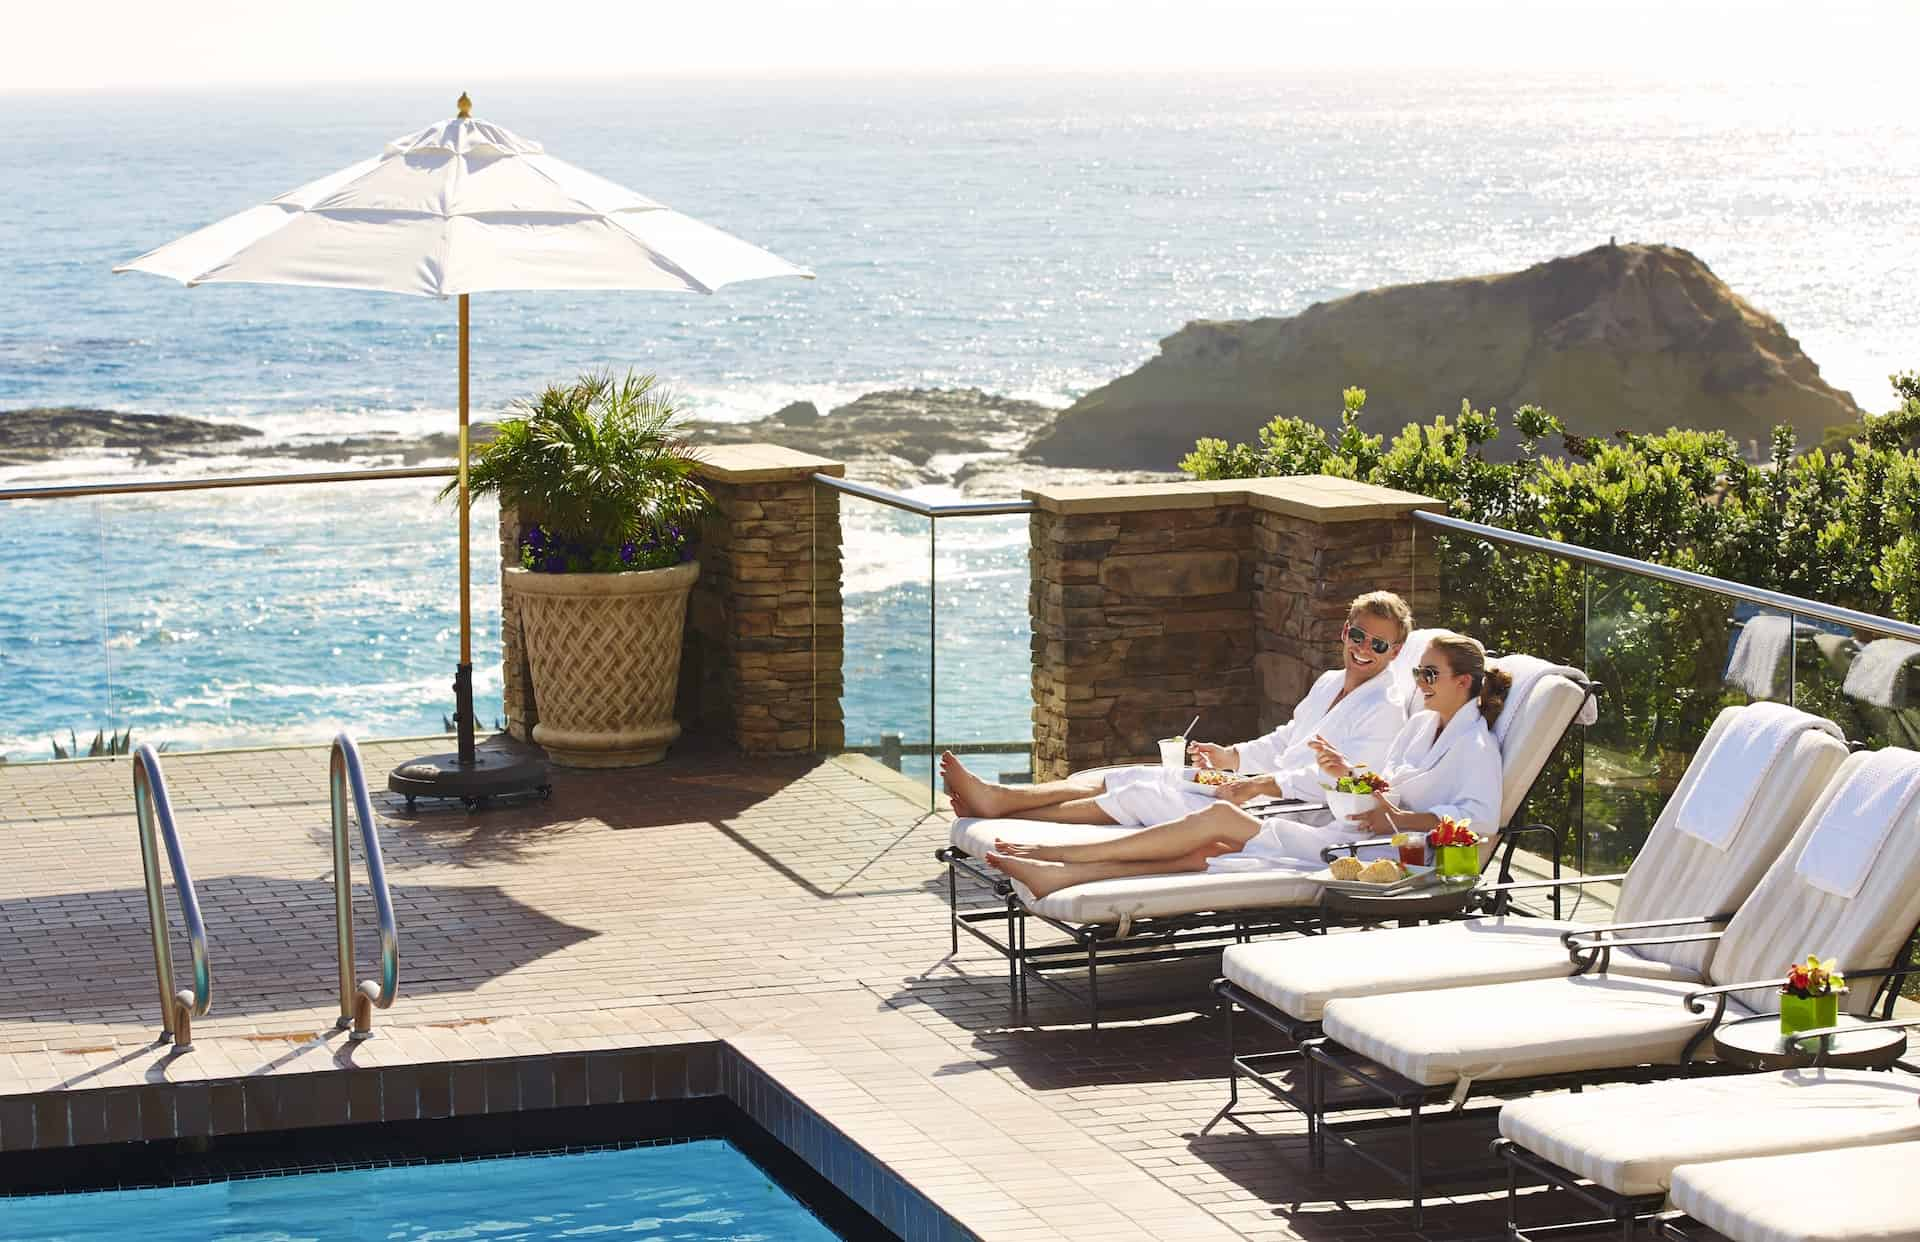 Spa resorts in laguna beach image gallery montage for Health spa vacations for couples